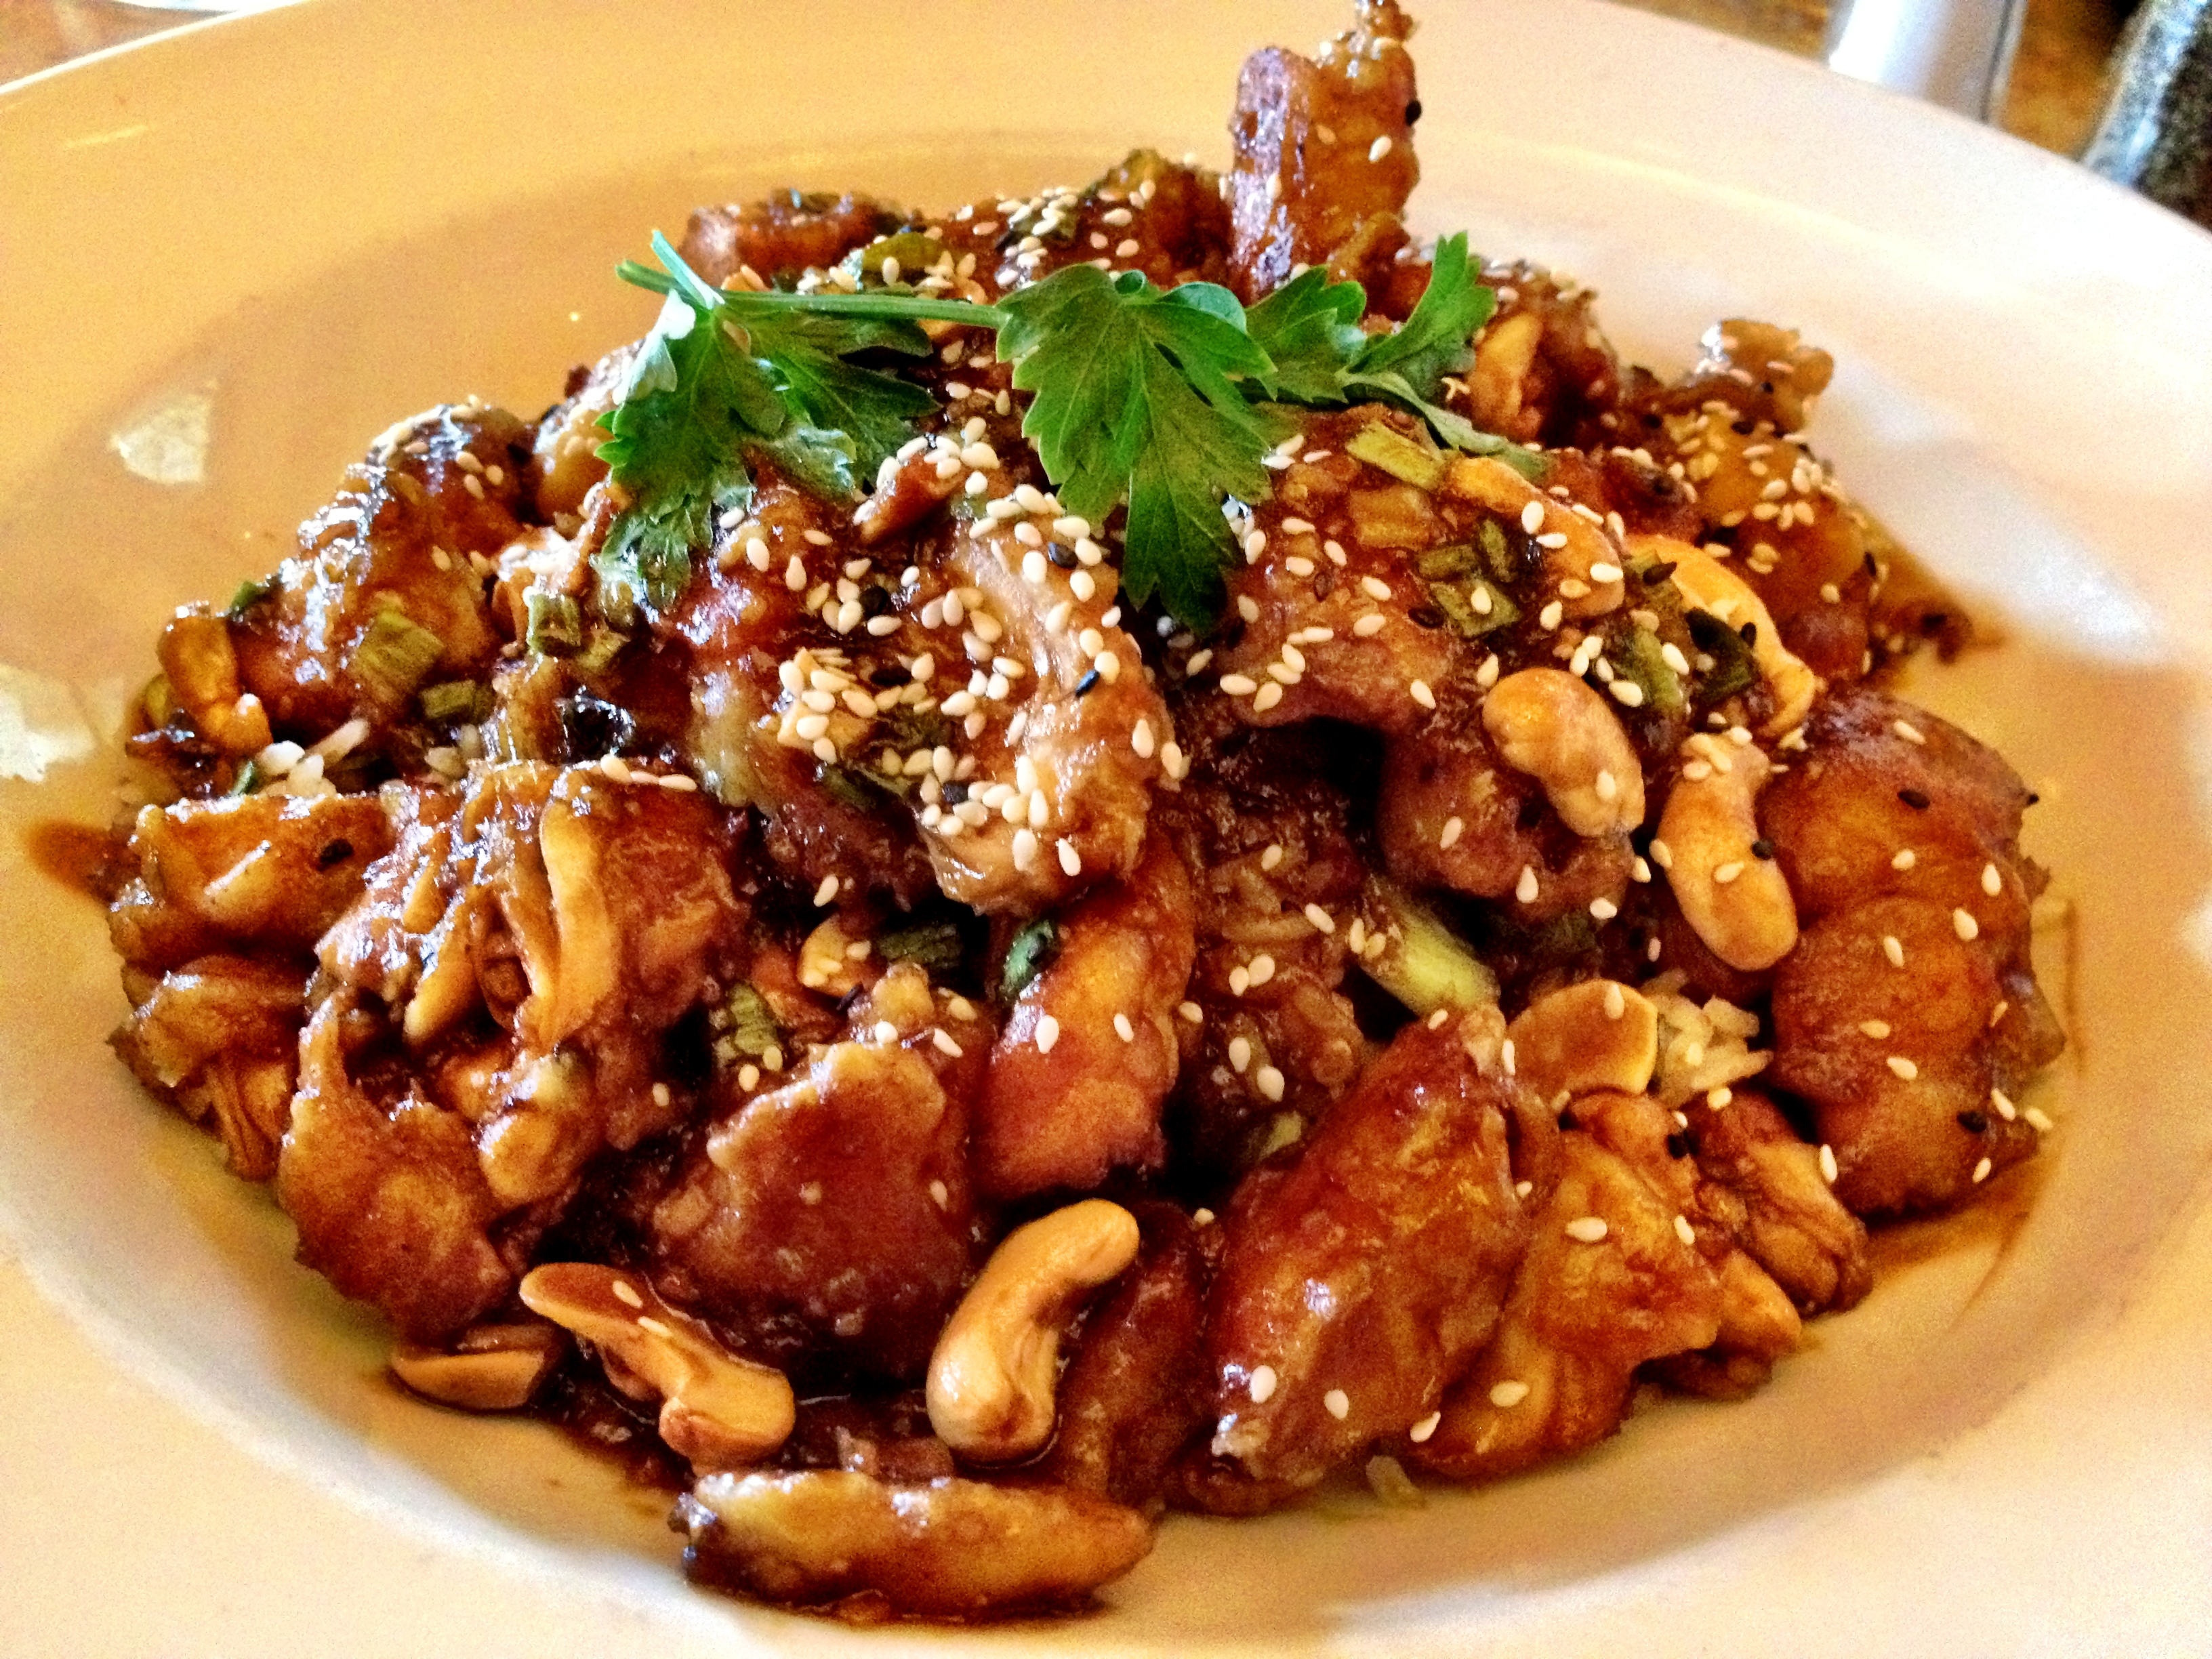 Cheesecake Factory Spicy Cashew Chicken